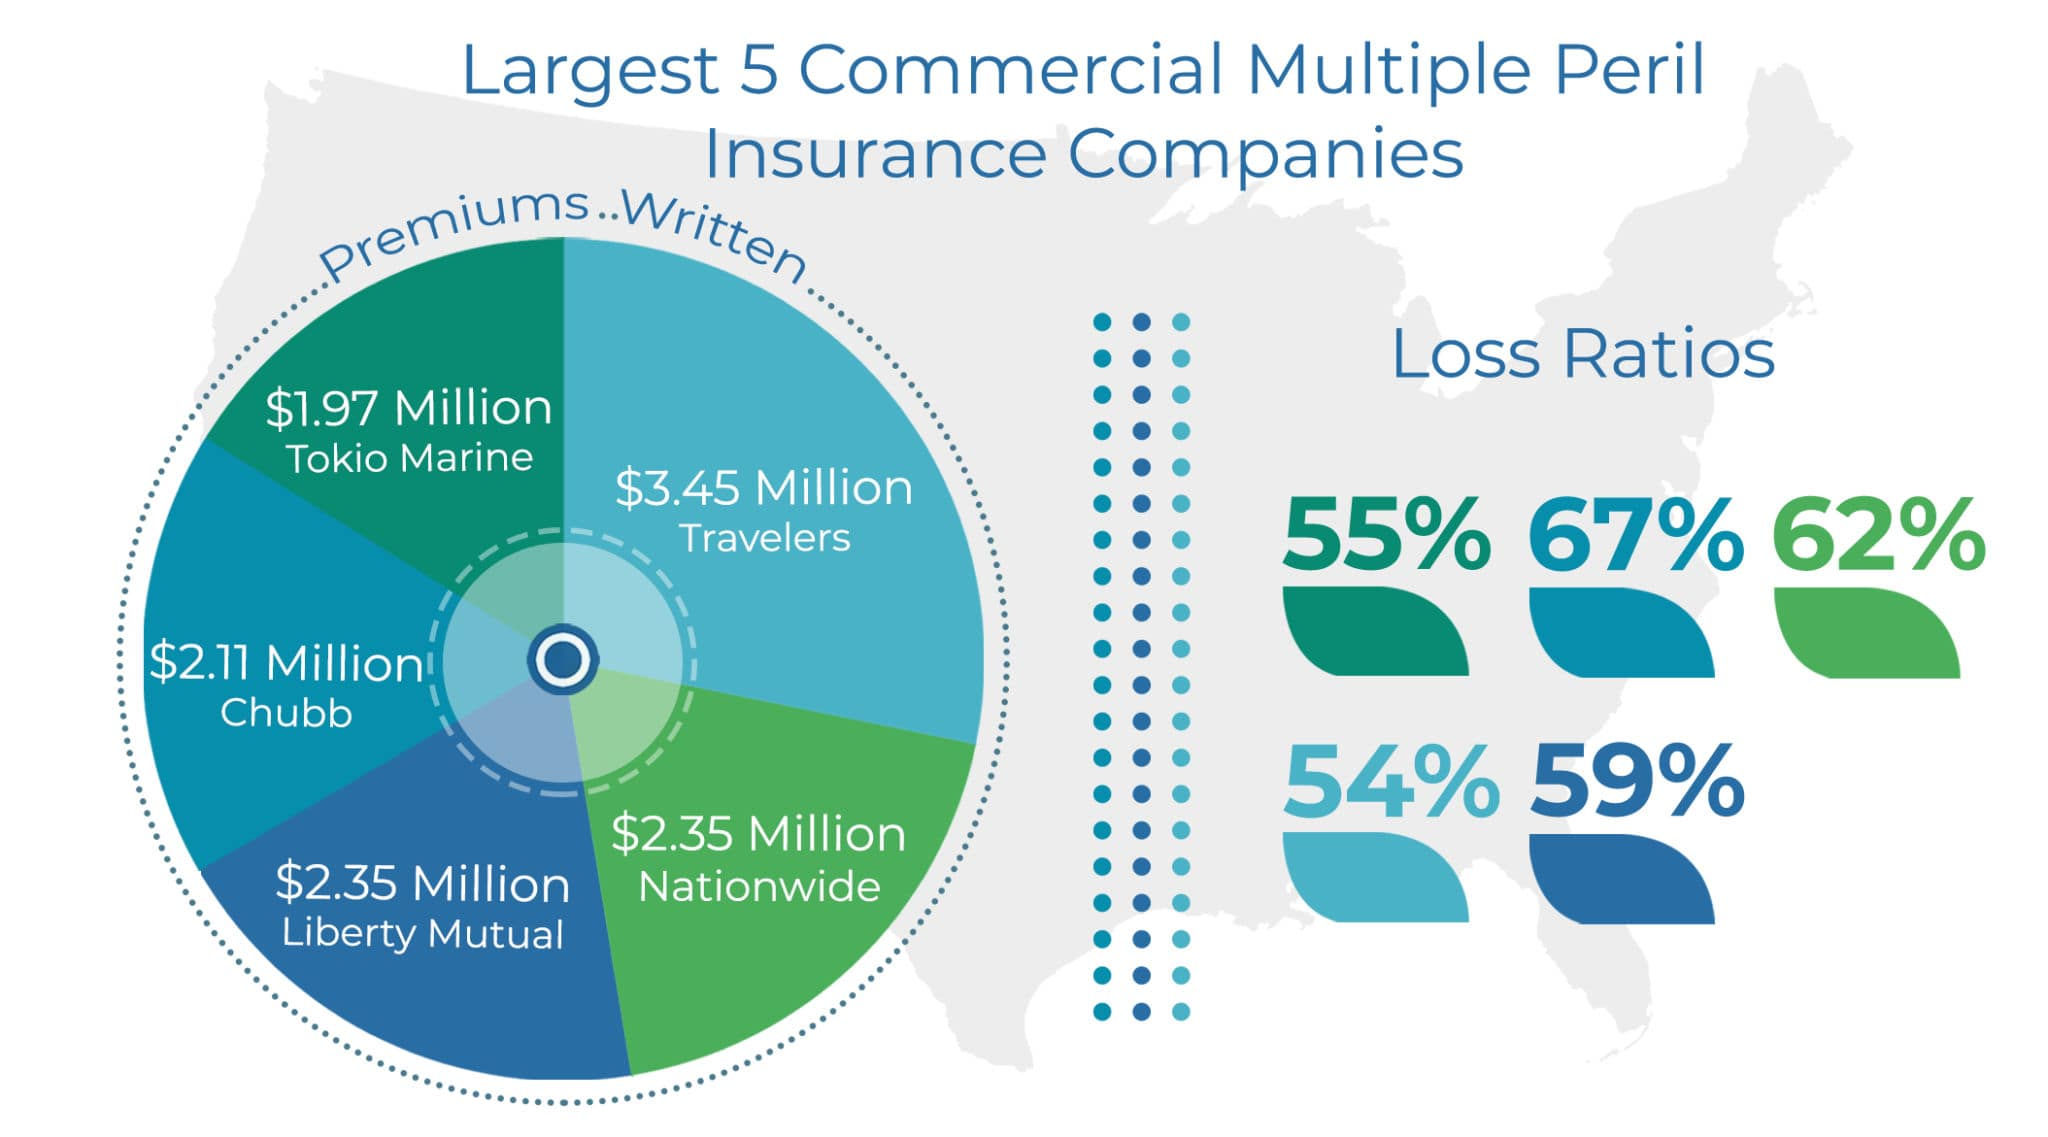 largest five companies for commercial multiple peril insurance by premiums written and loss ratios